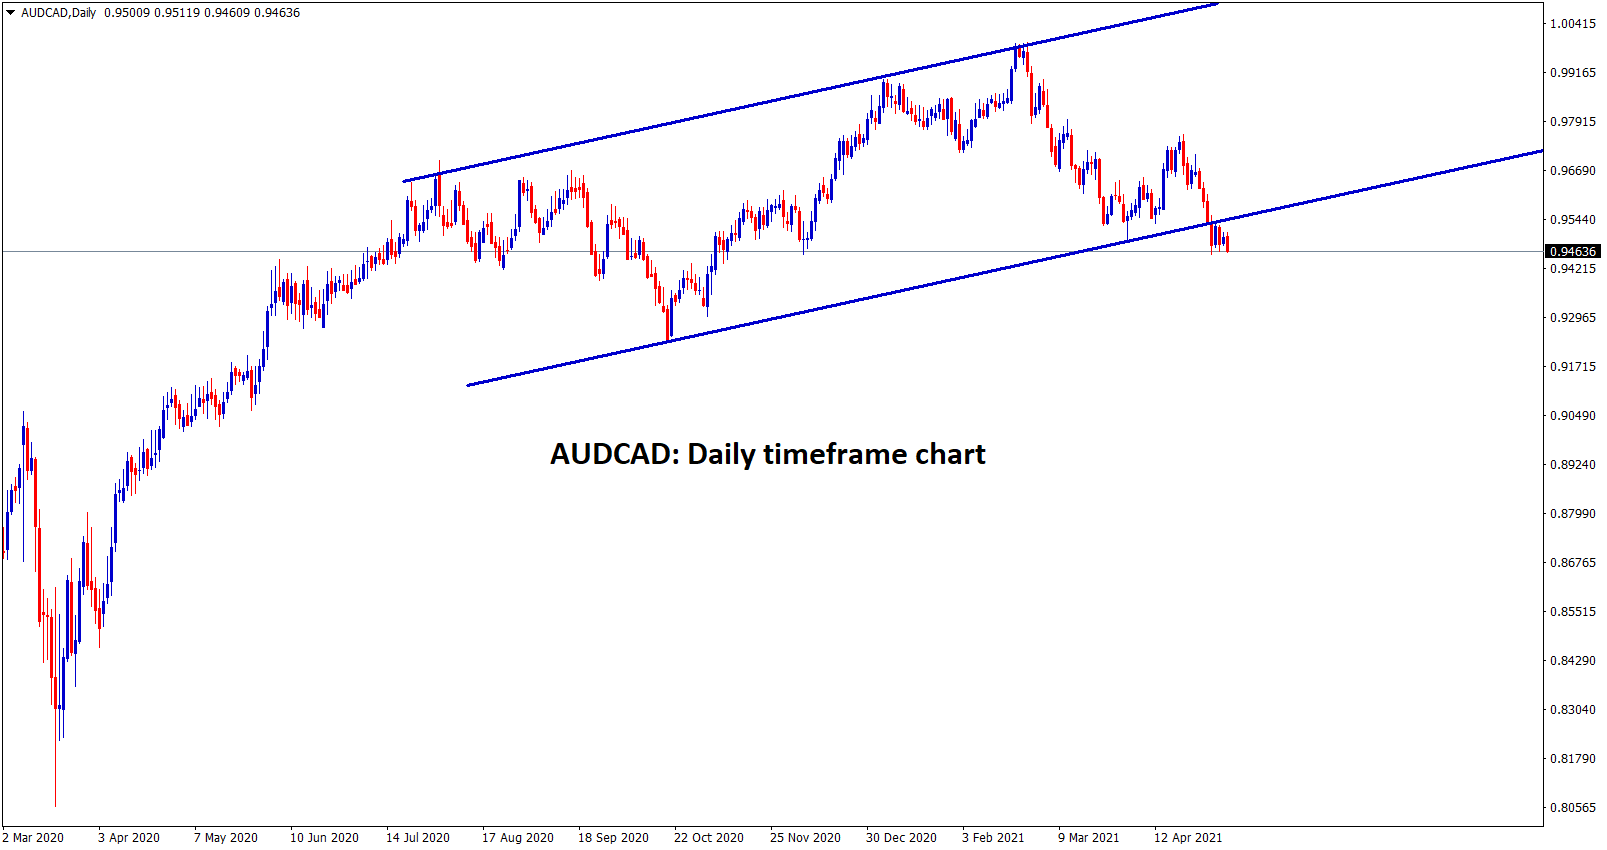 AUDCAD is trying to break the higher low level of an Ascending Channel in the daily timeframe chart